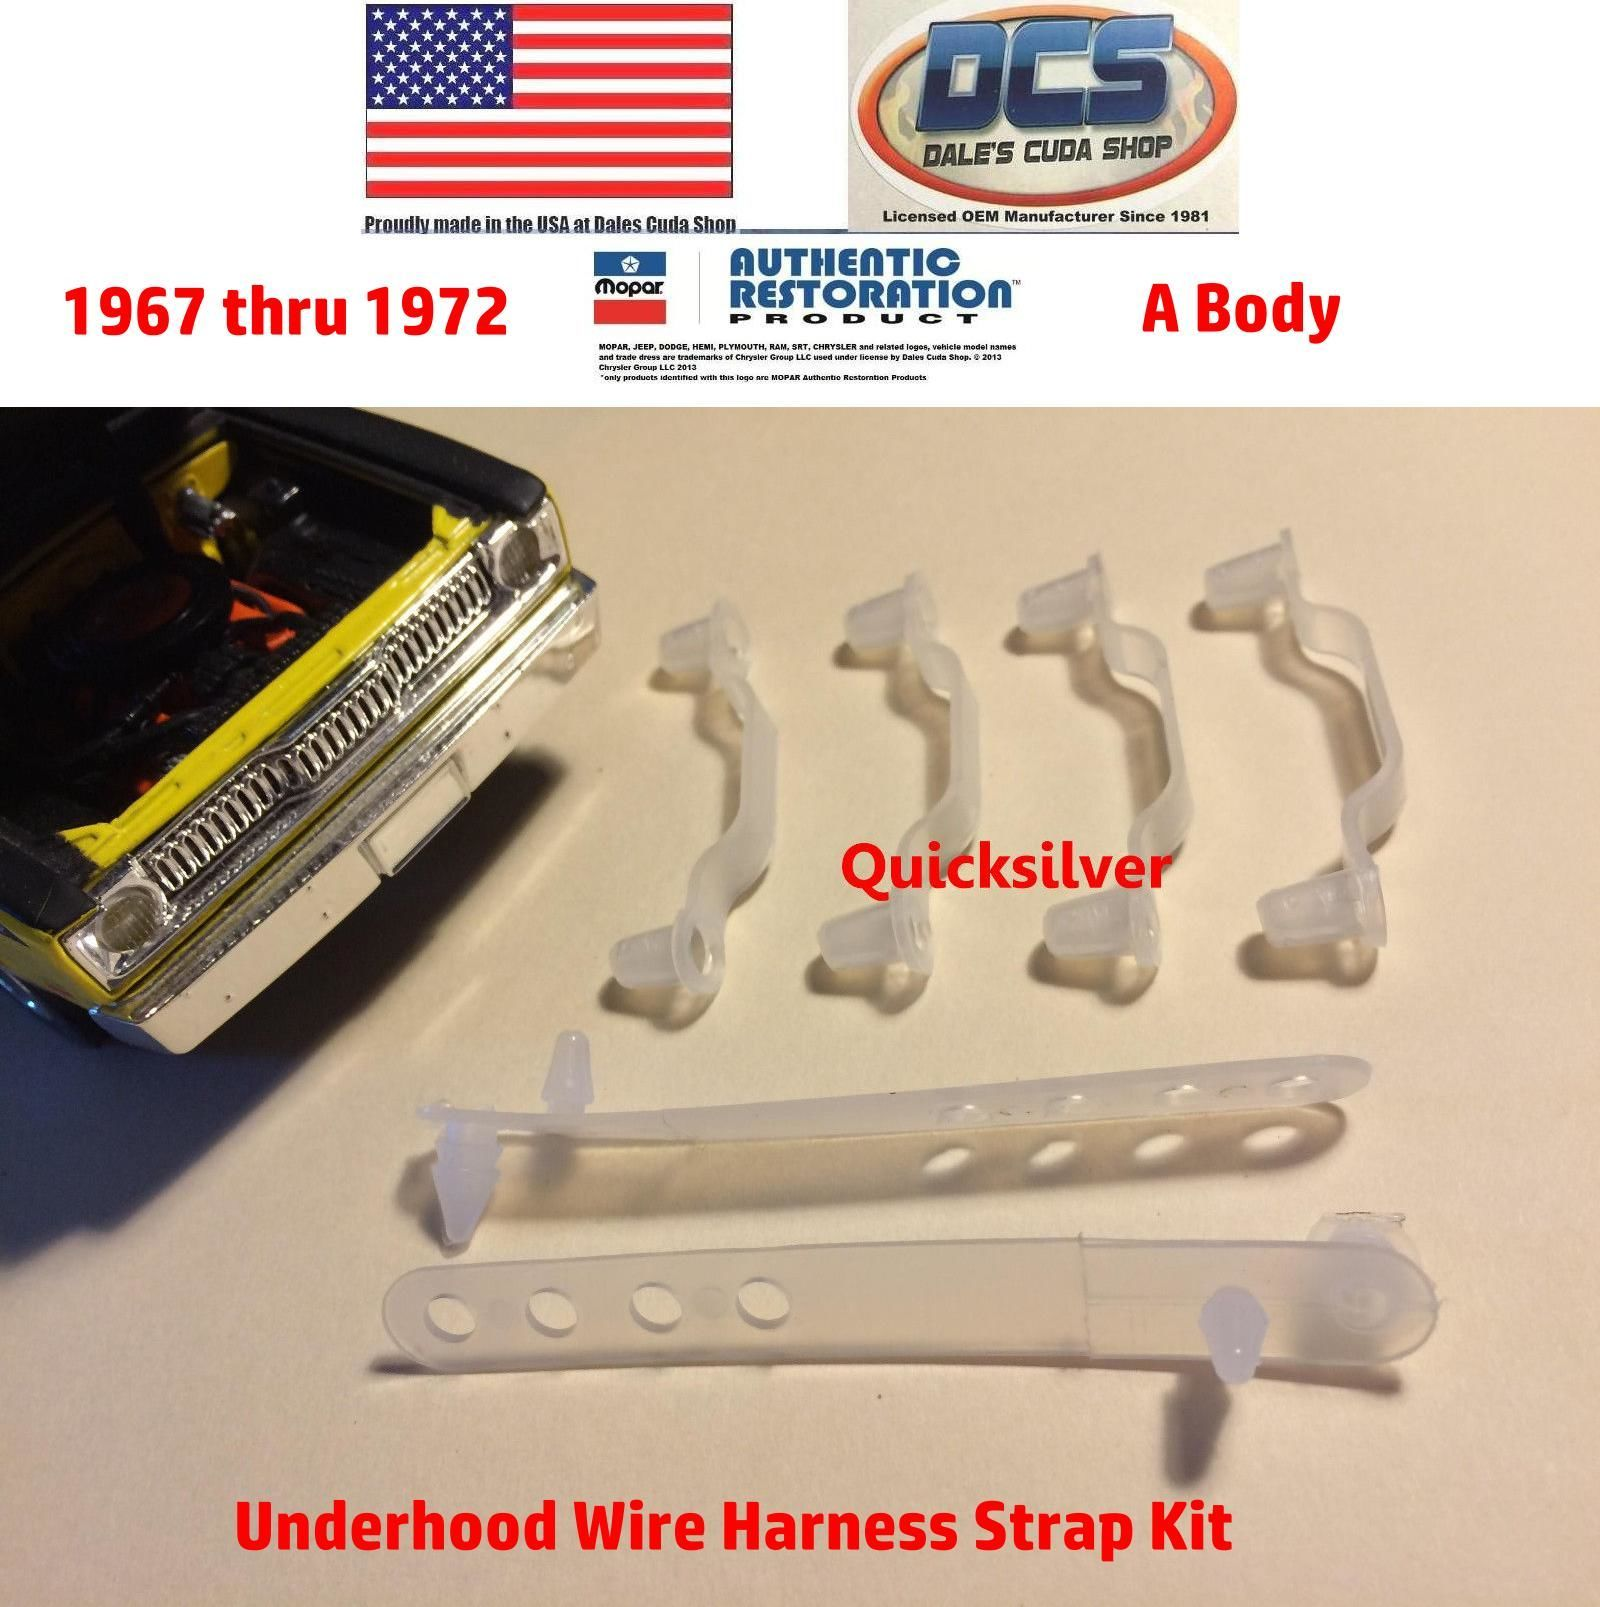 Pin On Mopar Musclecar Wire Harness Strap Retainer Kits For Sale